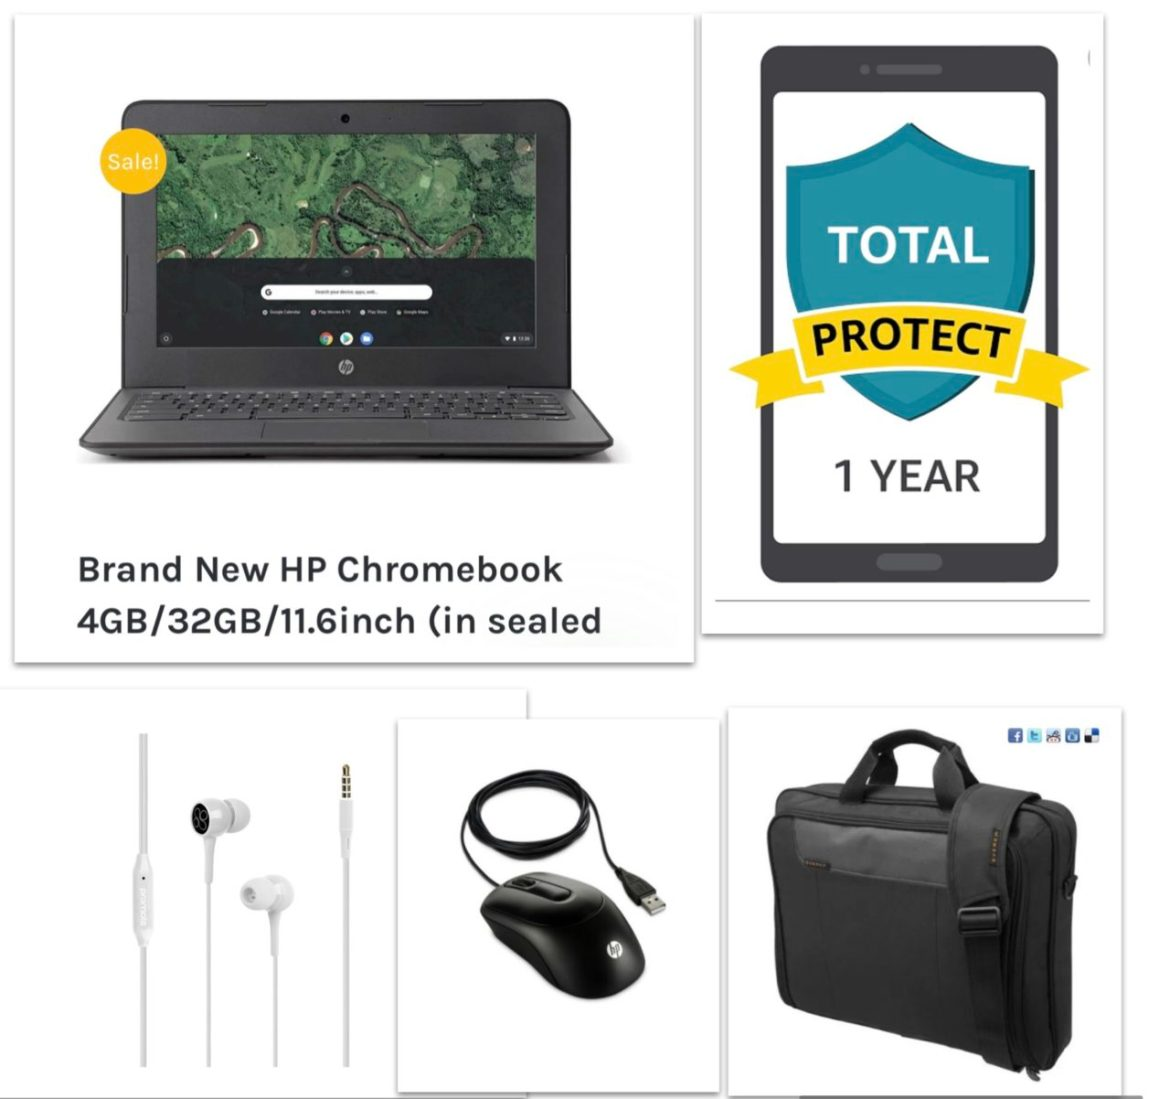 New HP Chromebook Bundle – Chromebook+Bag+Ear Phone+Mouse+12 Month Damage Protection